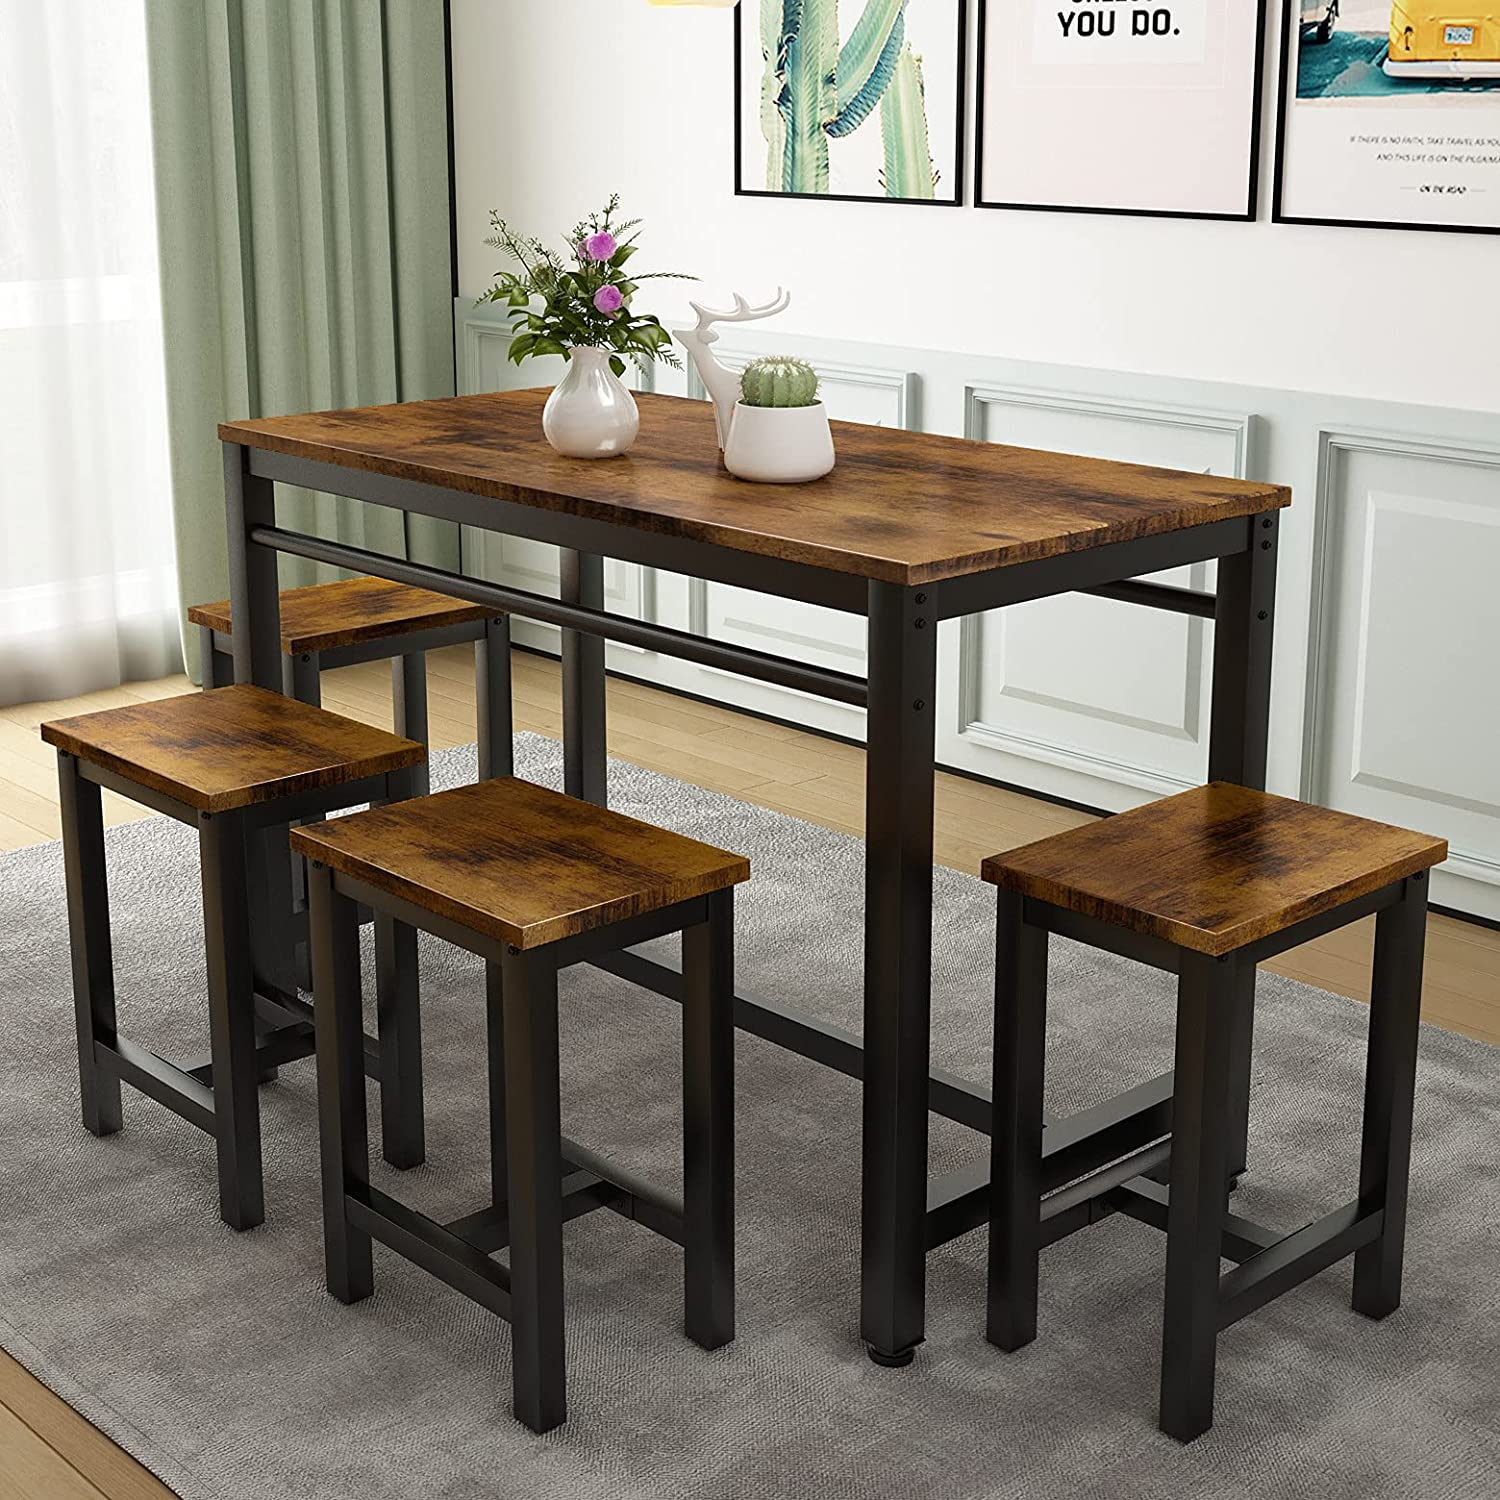 Buy 9 Pcs Dining Table Set, Modern Bar Table Set with 9 Chairs ...